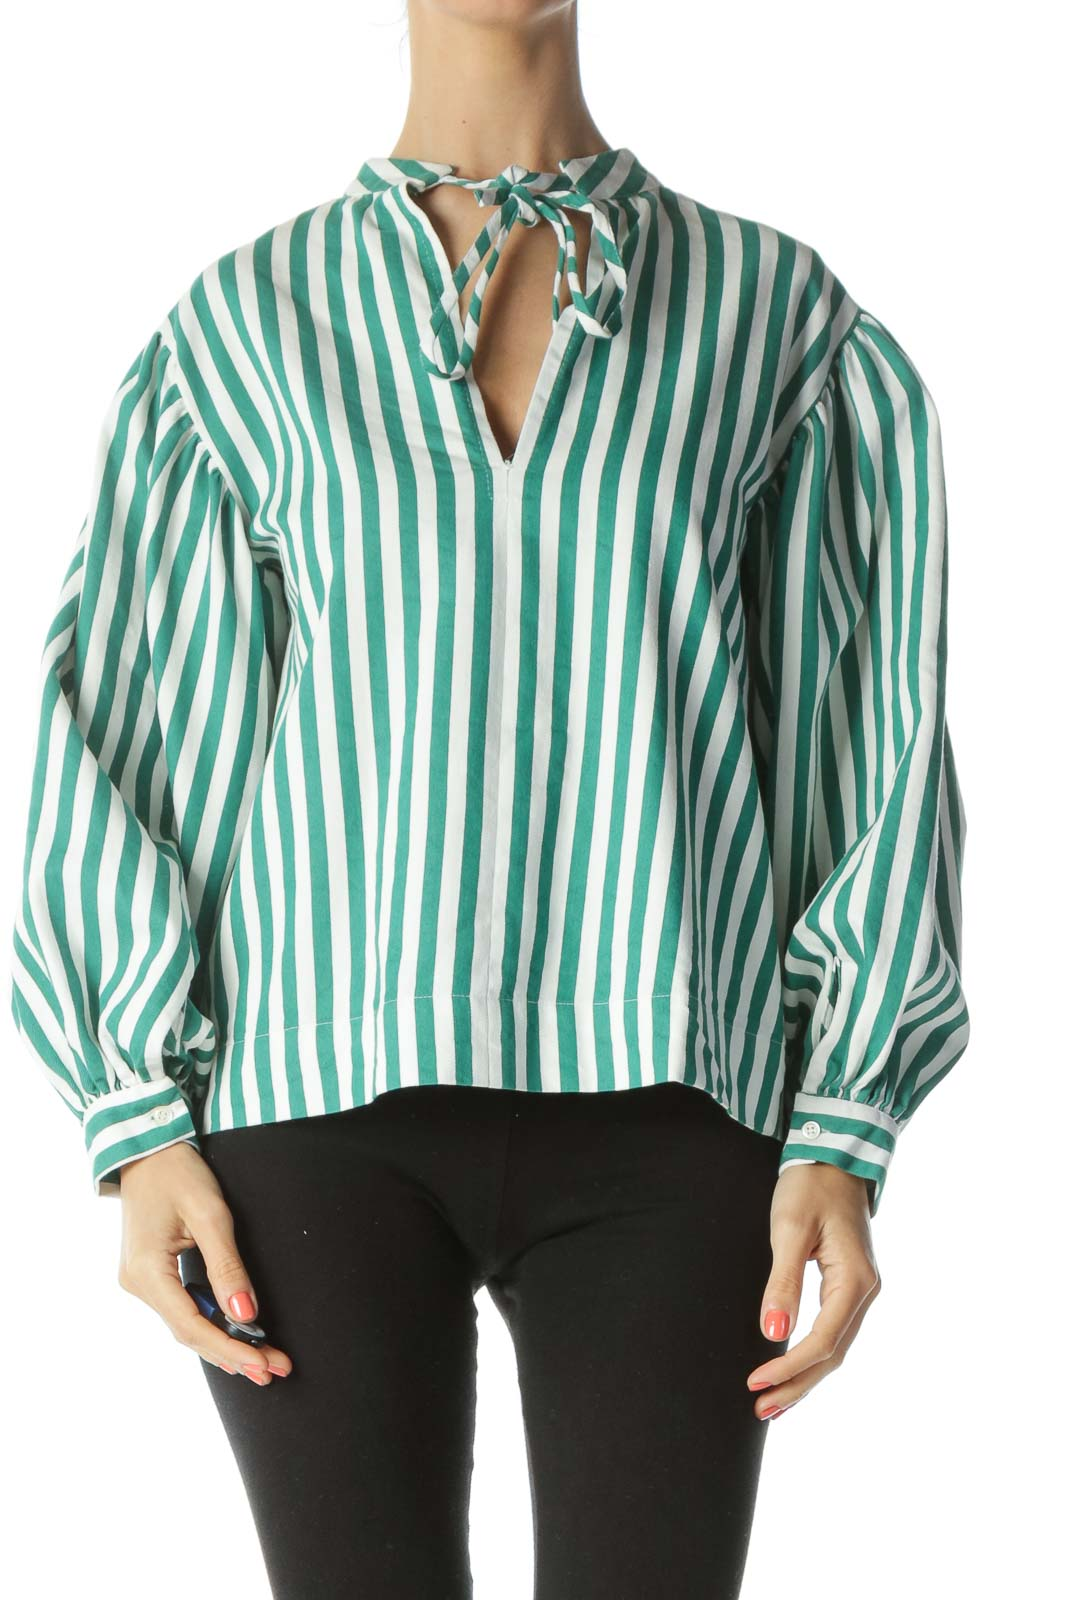 Emerald-Green/White Striped Neck-Back-Tie Top Front